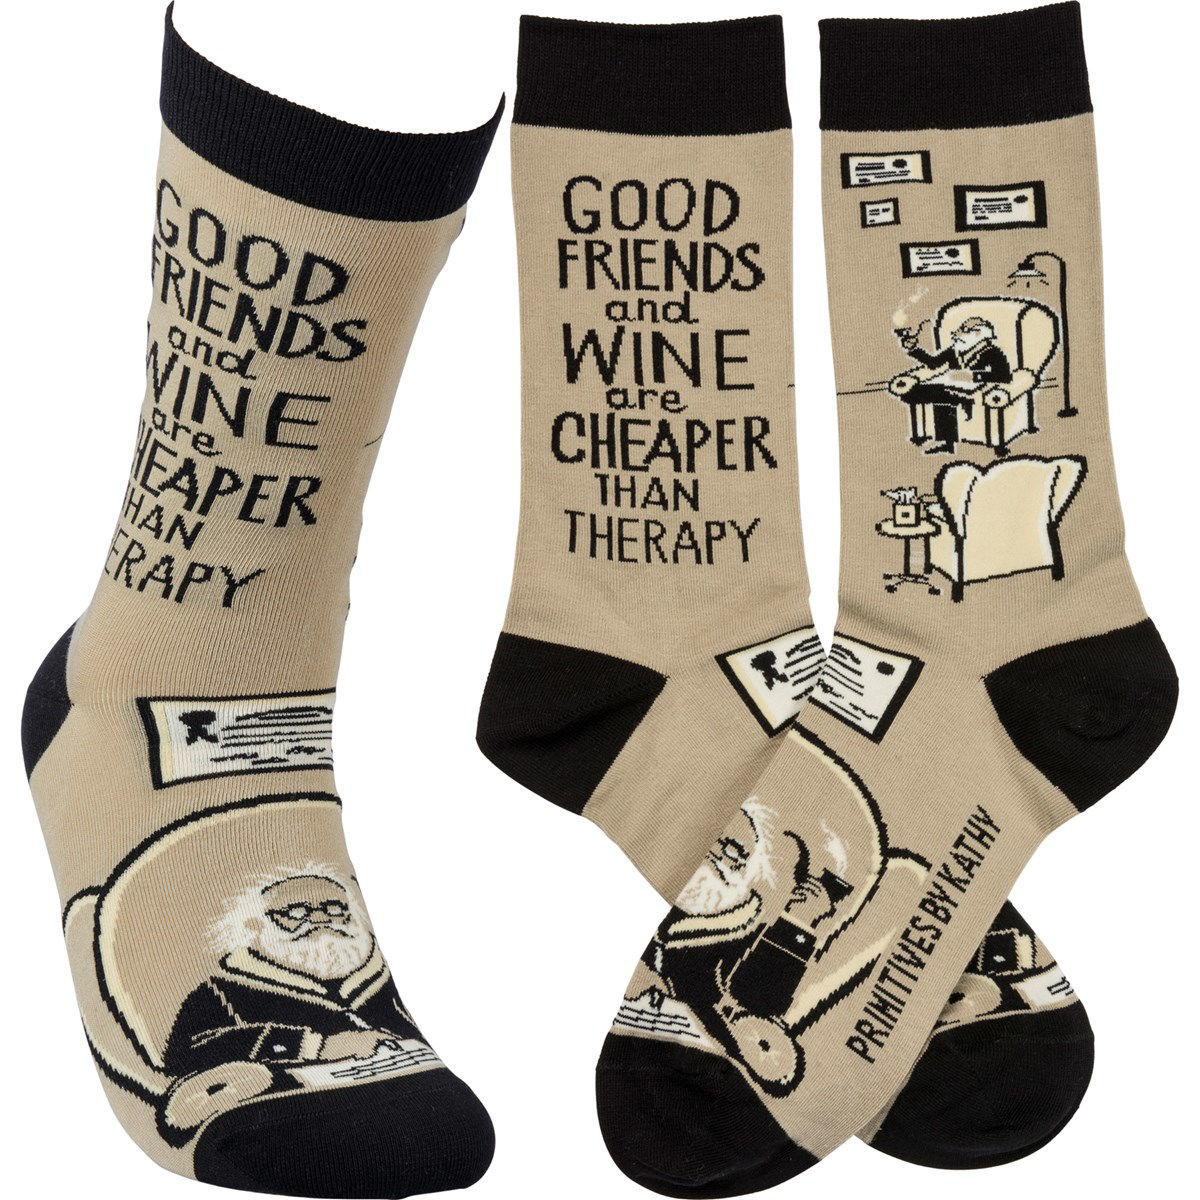 Friends & Wine Cheaper Than Therapy Socks by Primitives by Kathy